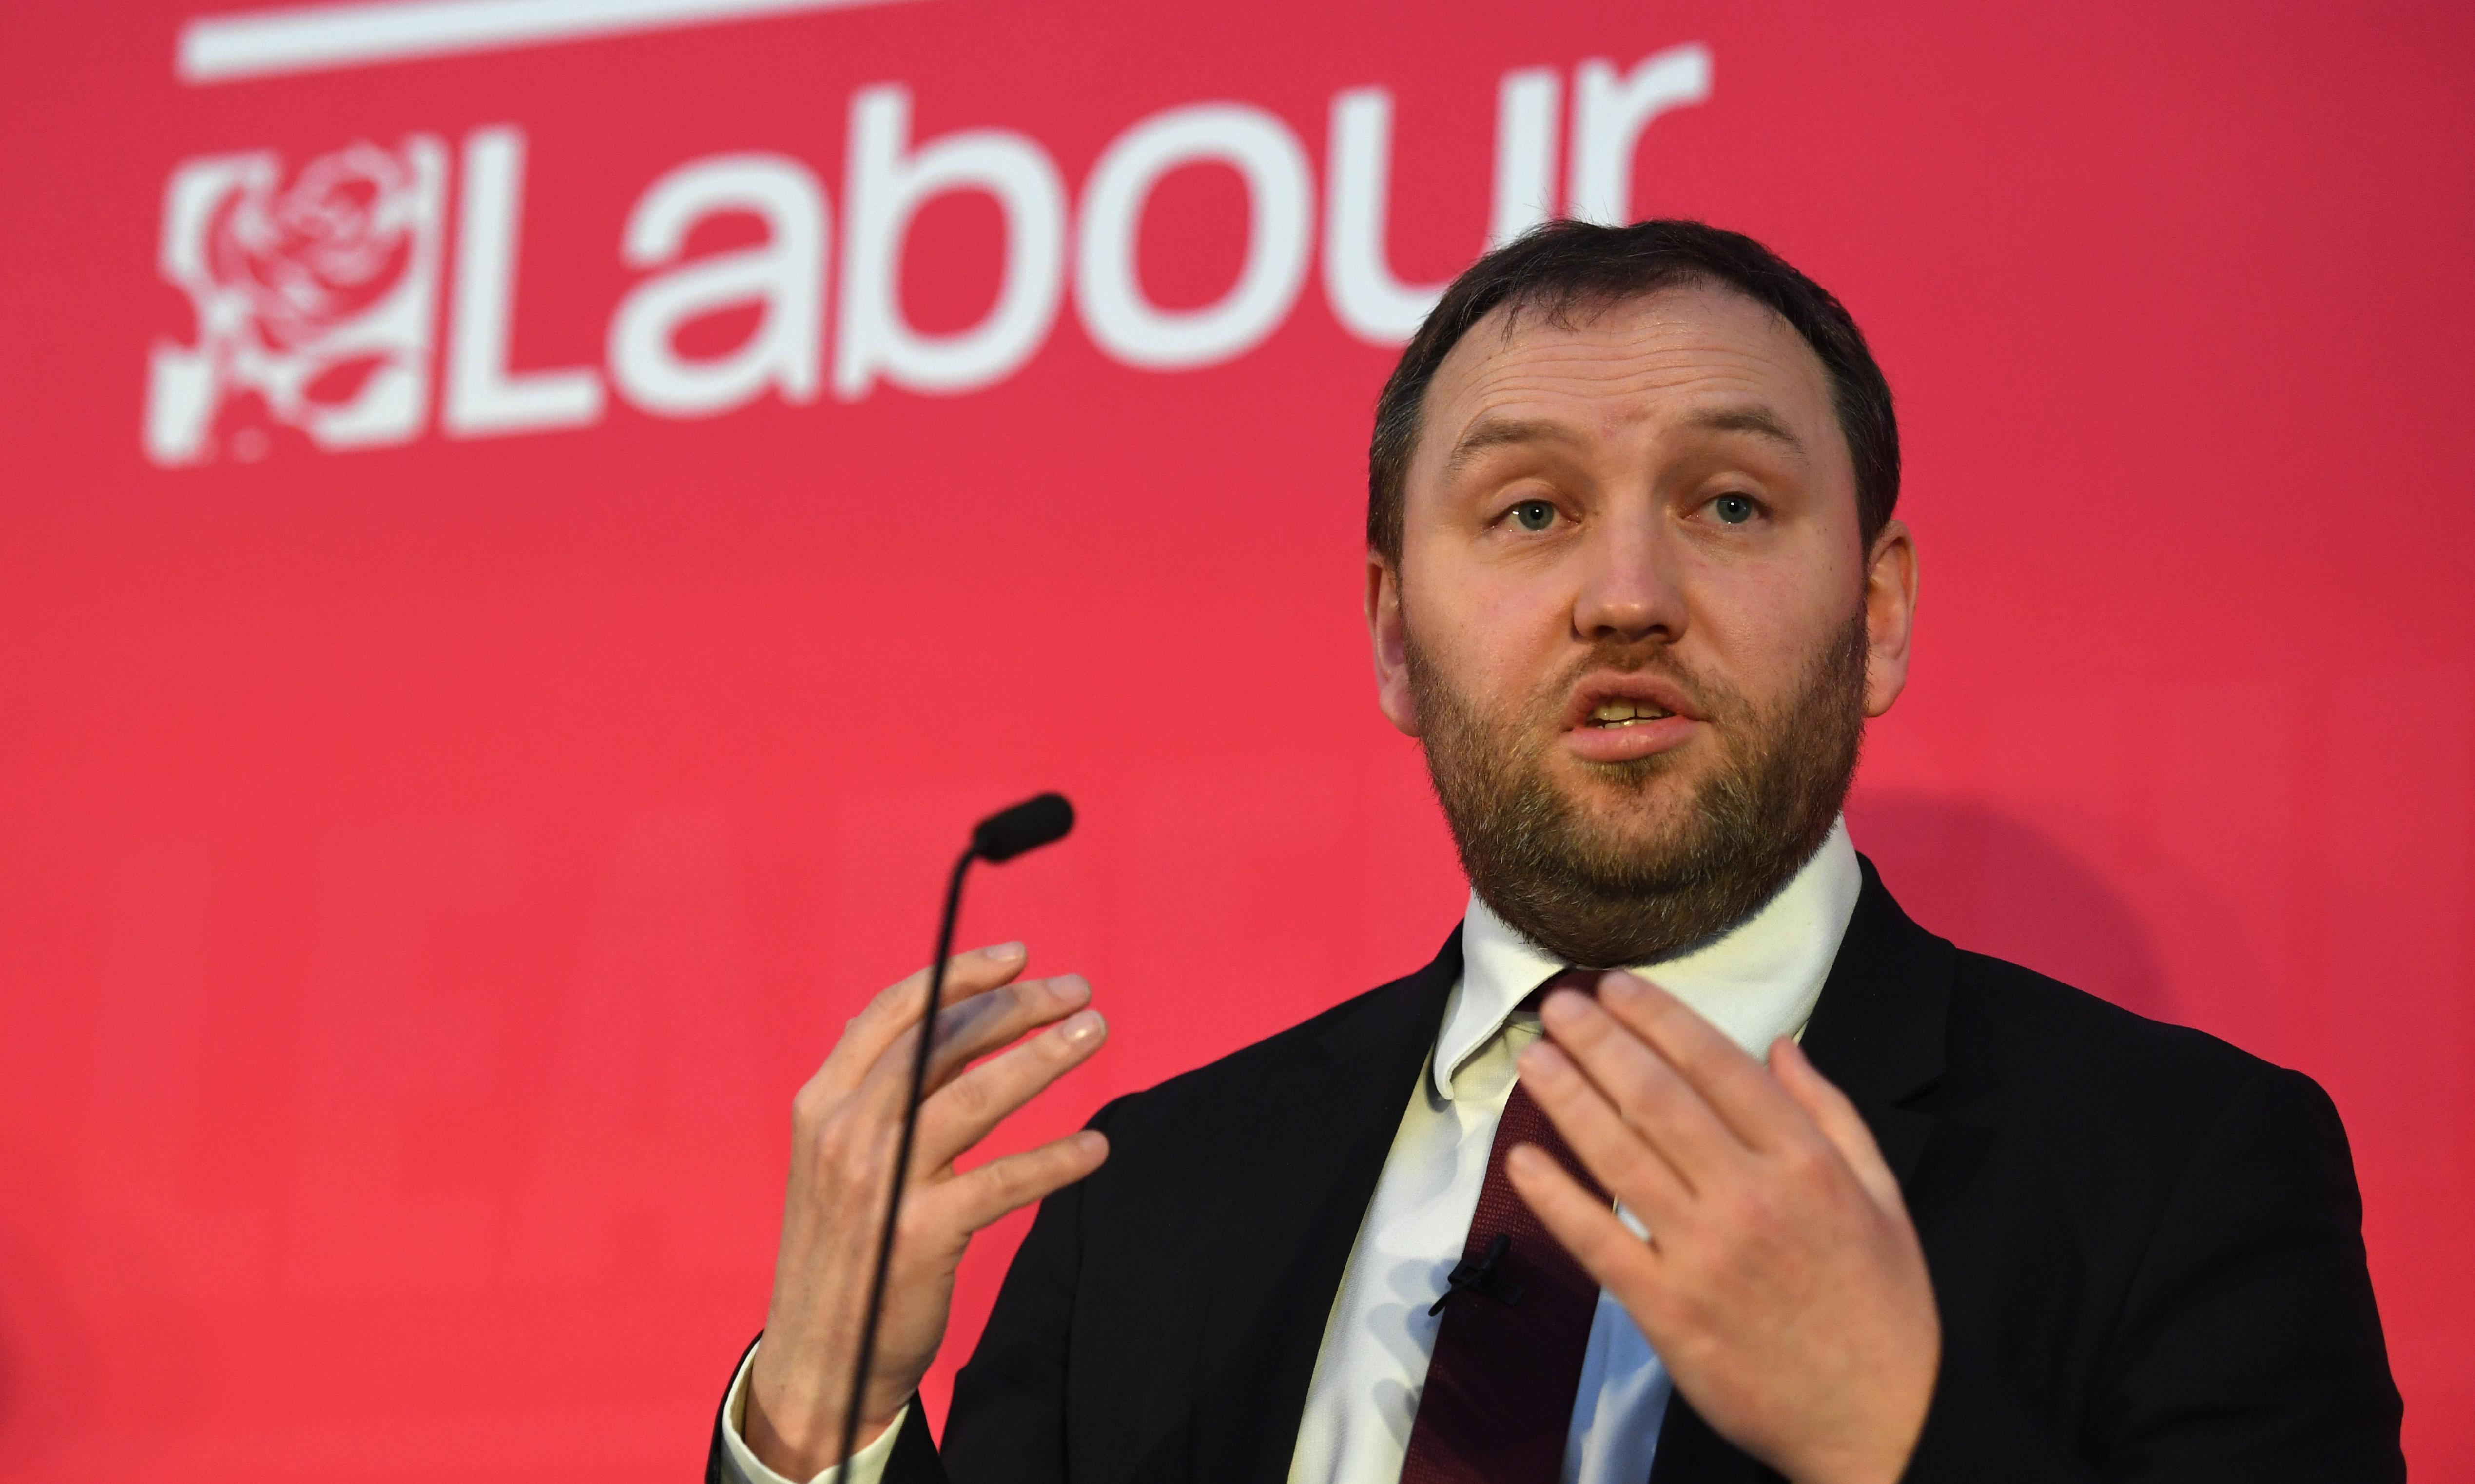 Scottish Labour urges UK party to learn from fall of 'tartan wall'